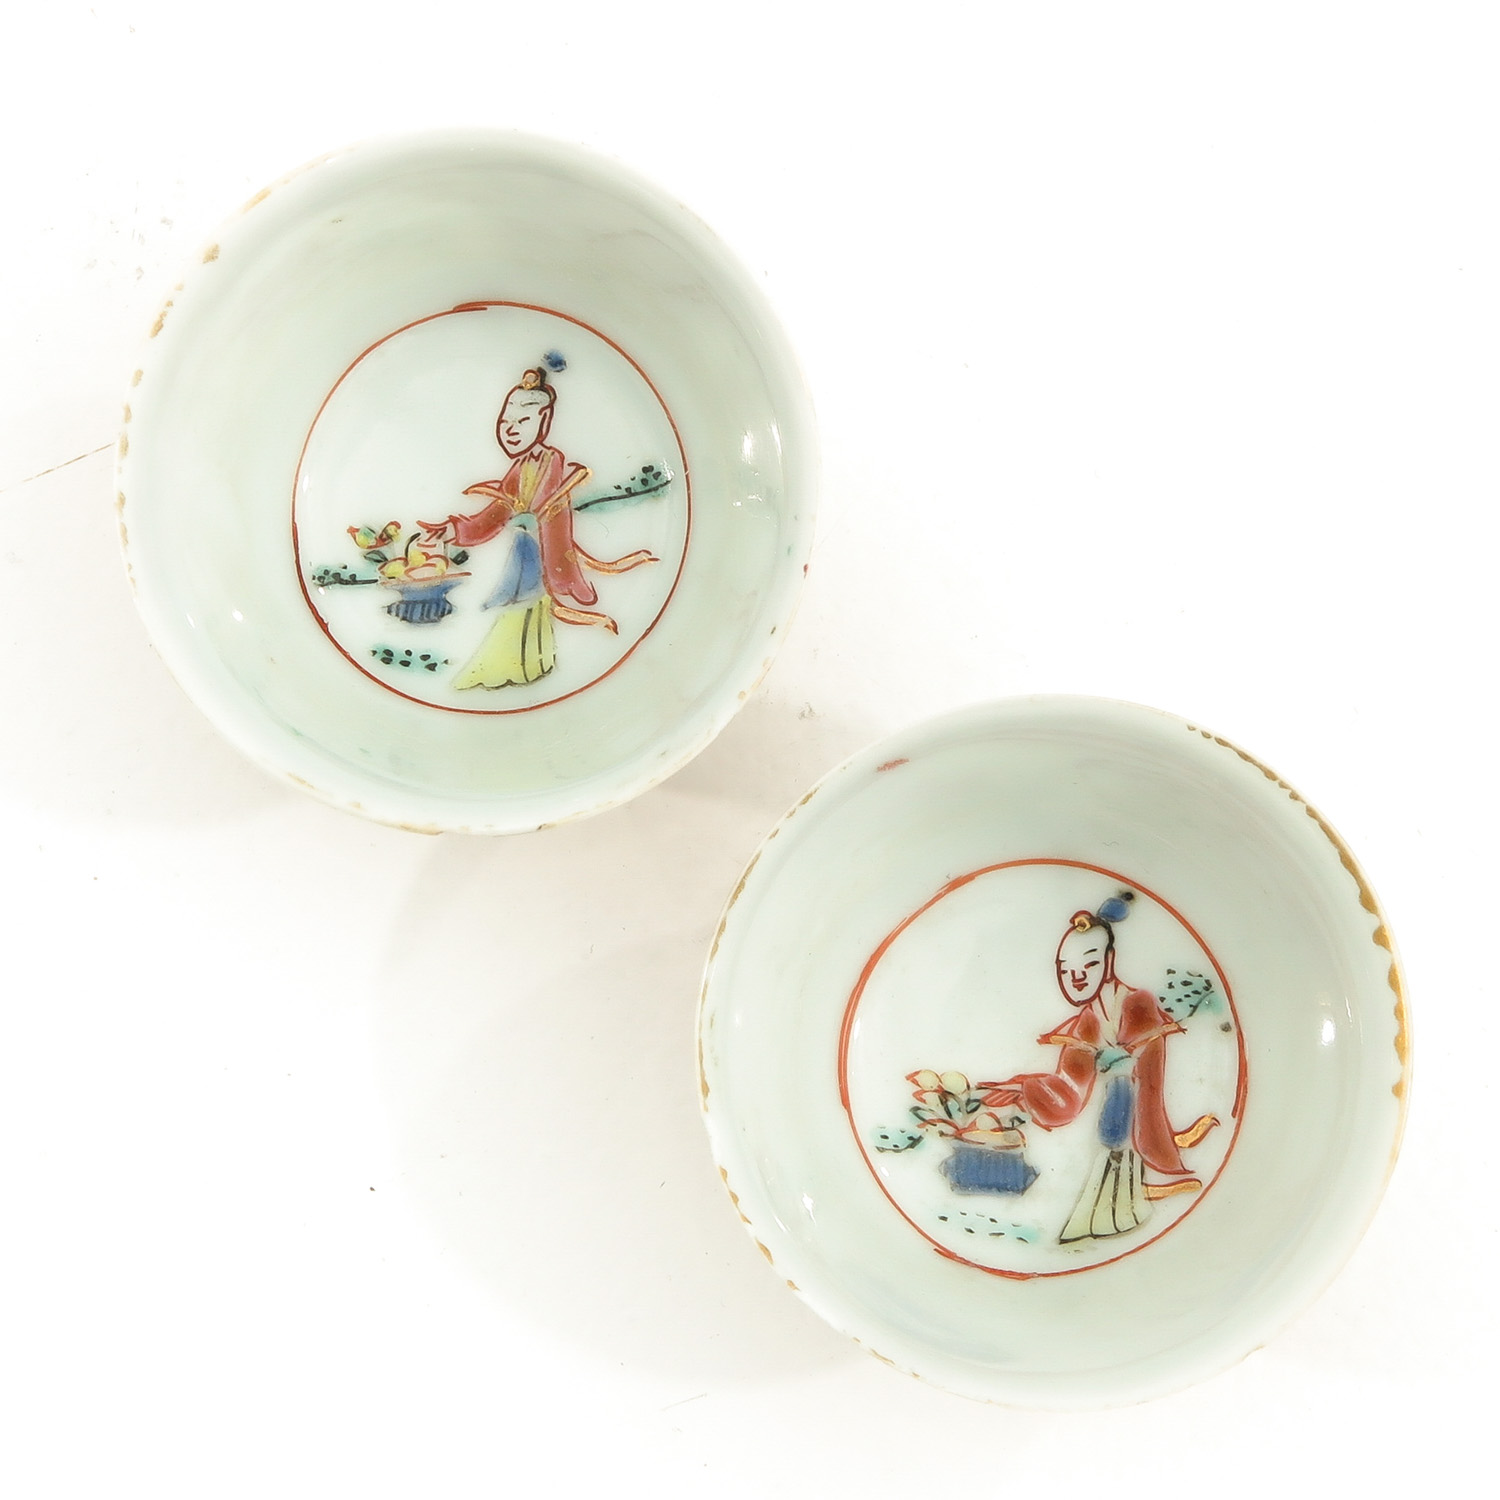 A Set of 2 Cups and Saucers - Image 5 of 10